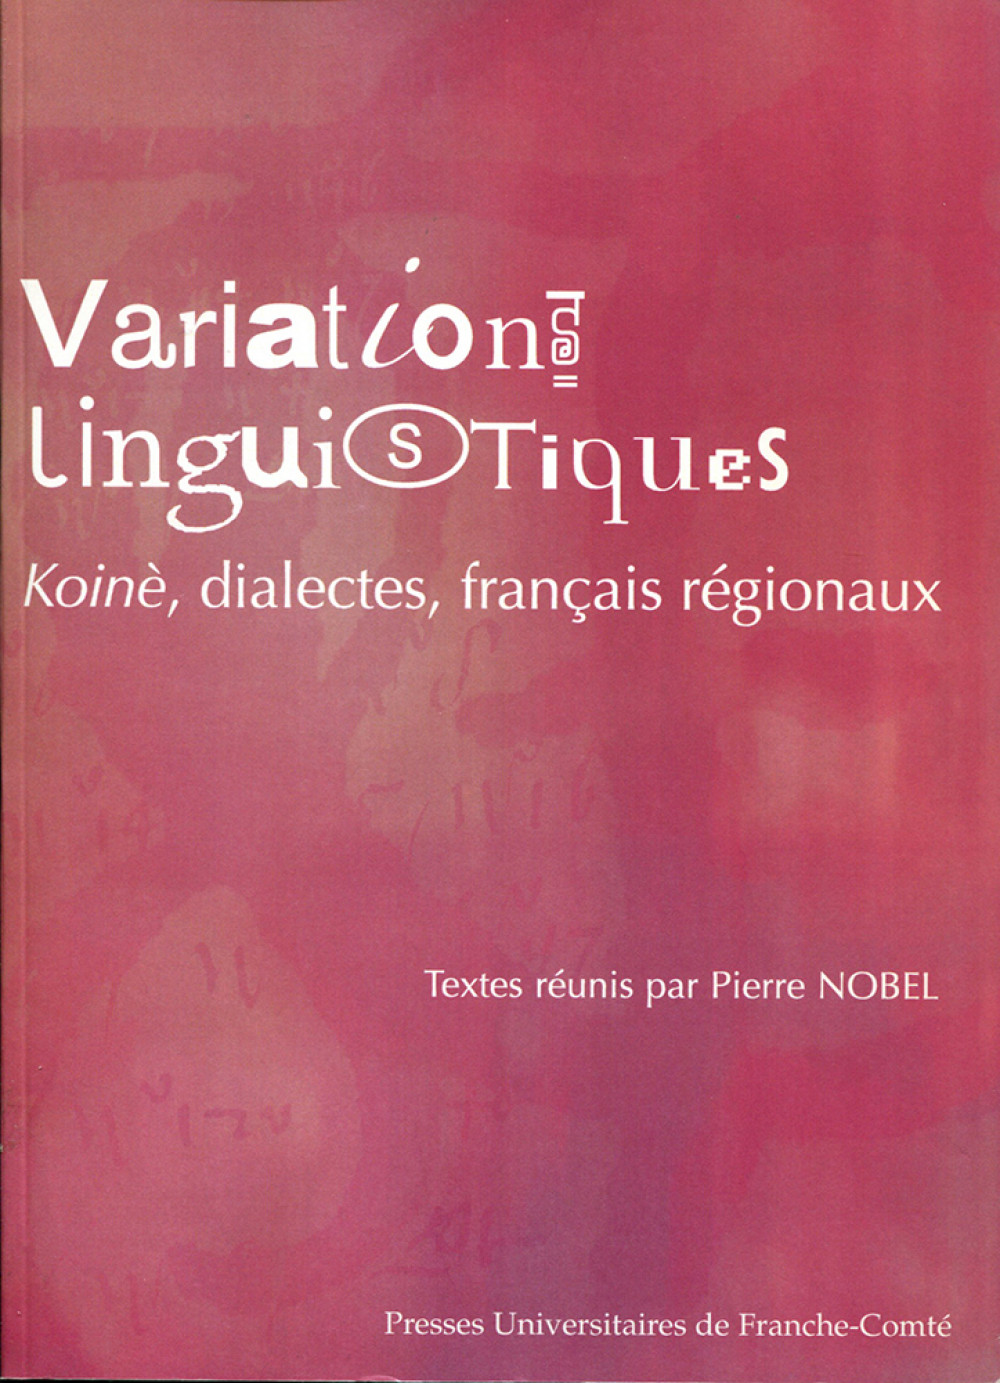 Variations linguistiques